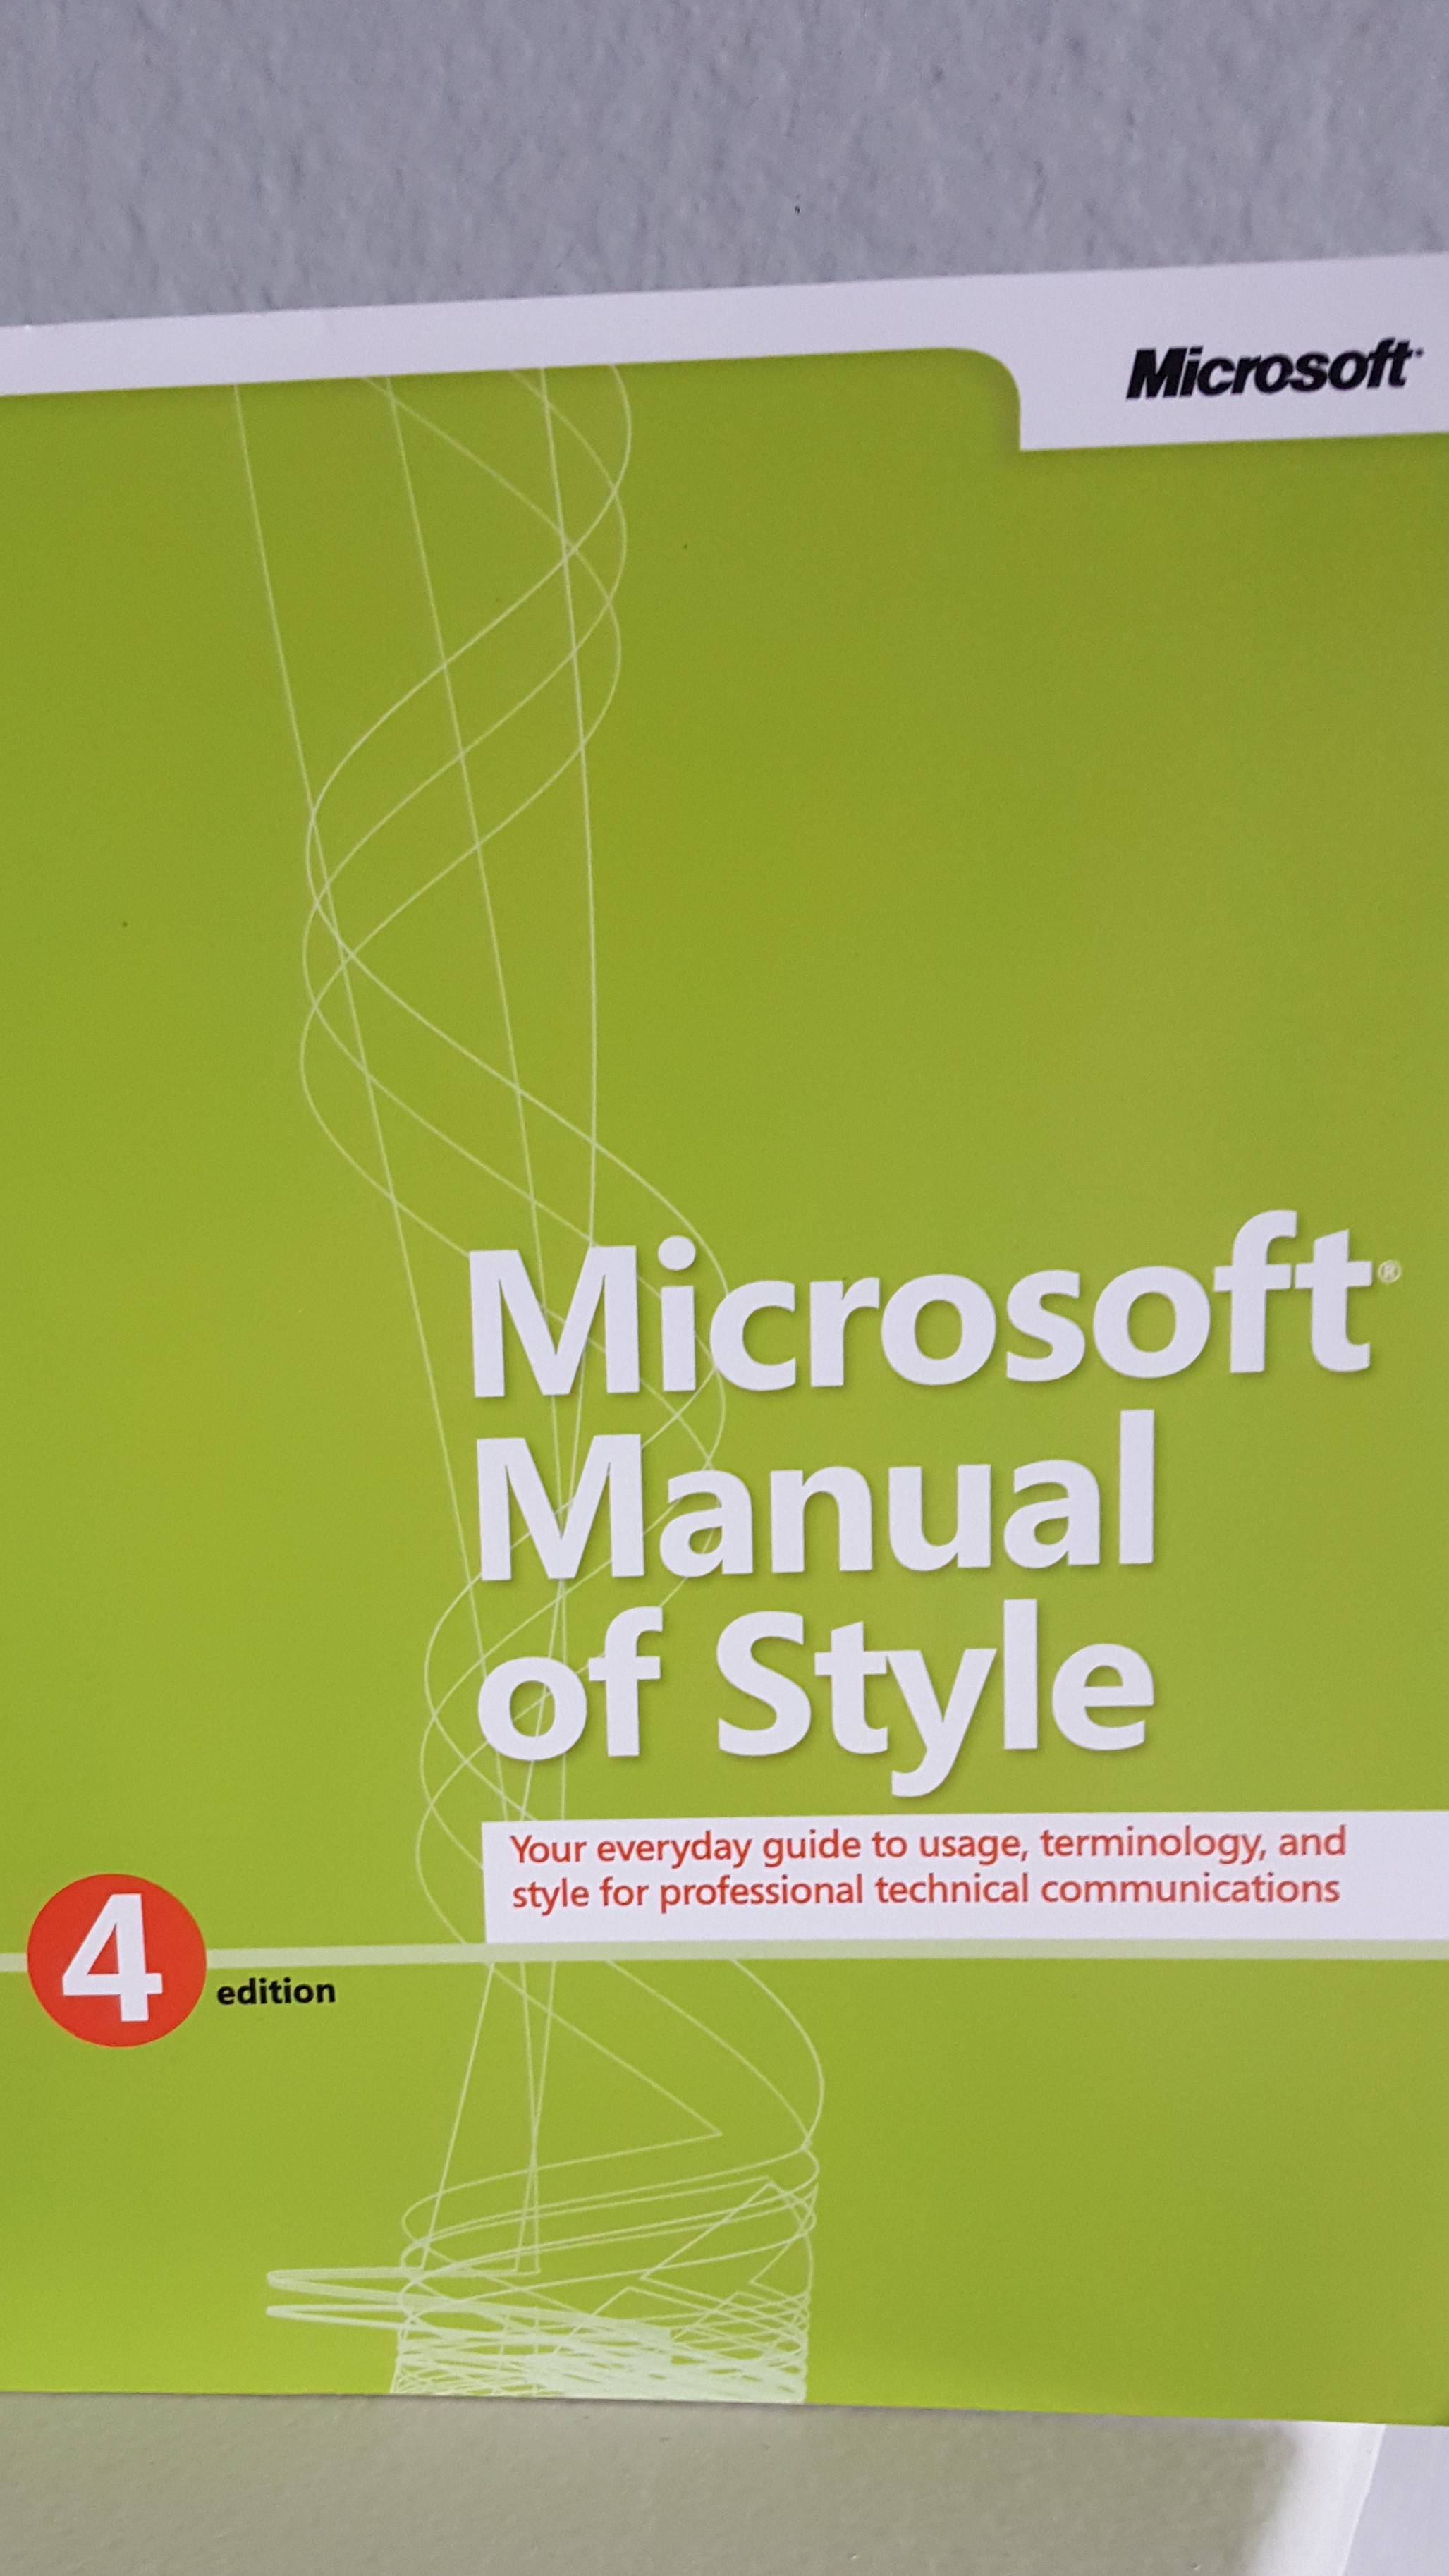 Microsoft Manual of Style-Proofread